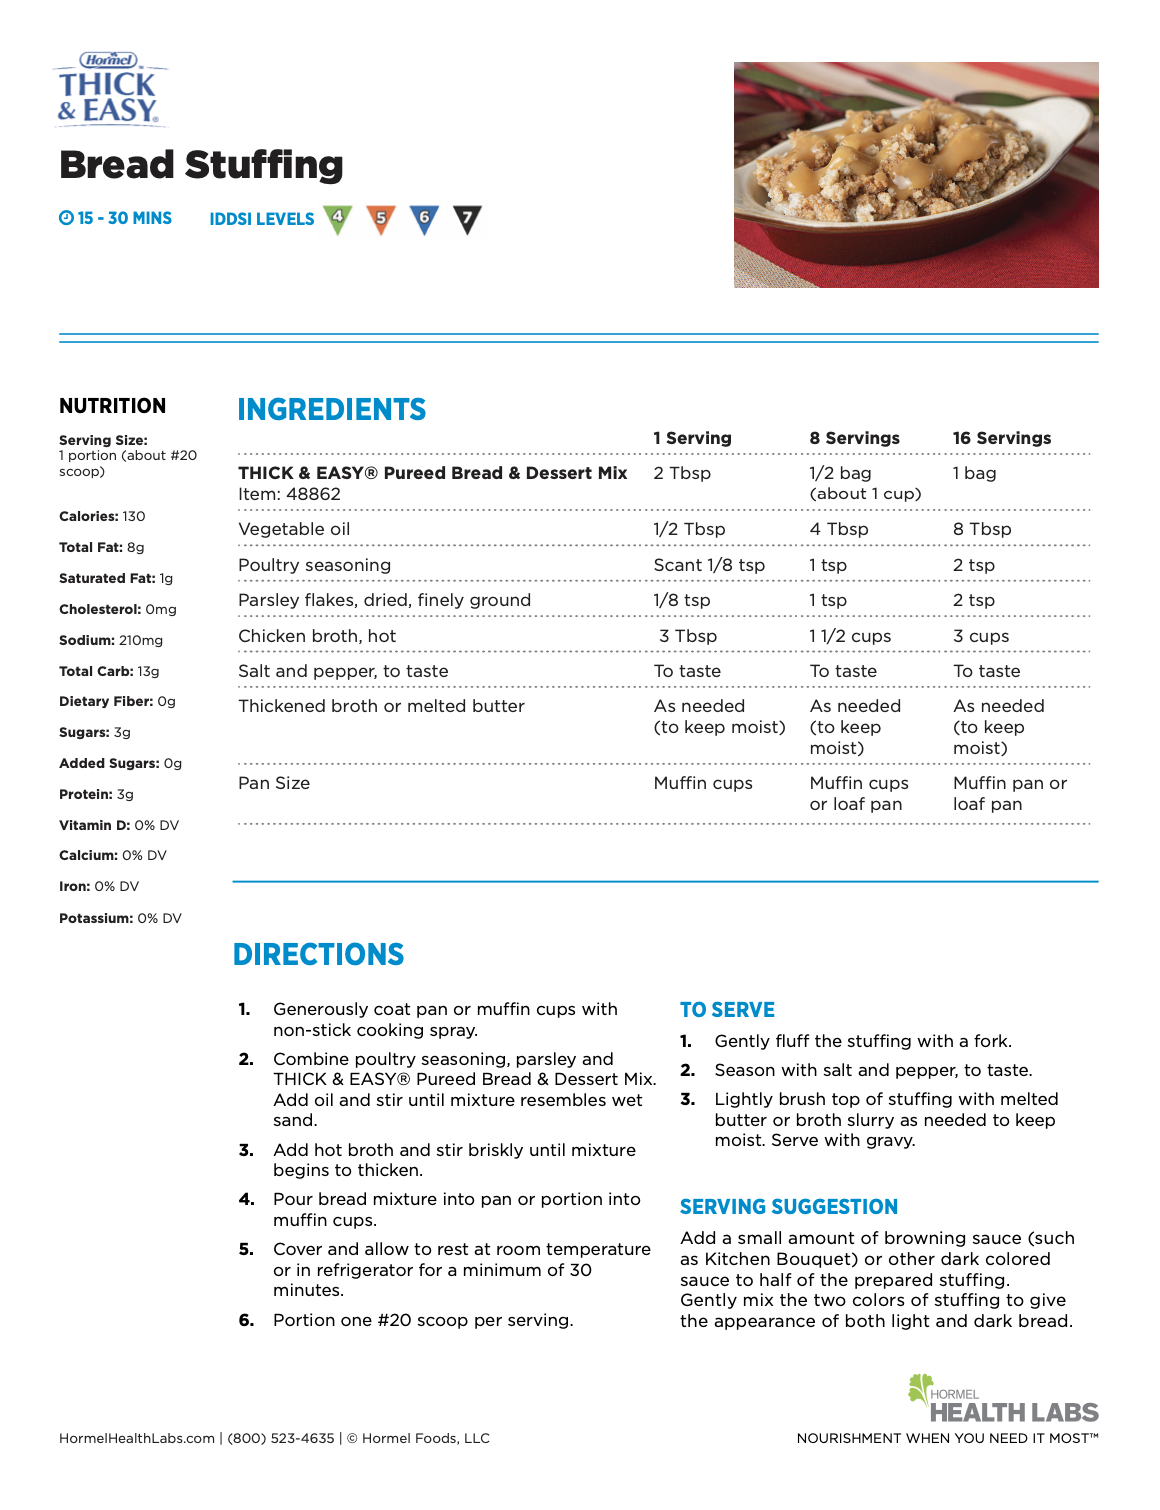 Thick and Easy bread stuffing recipe page